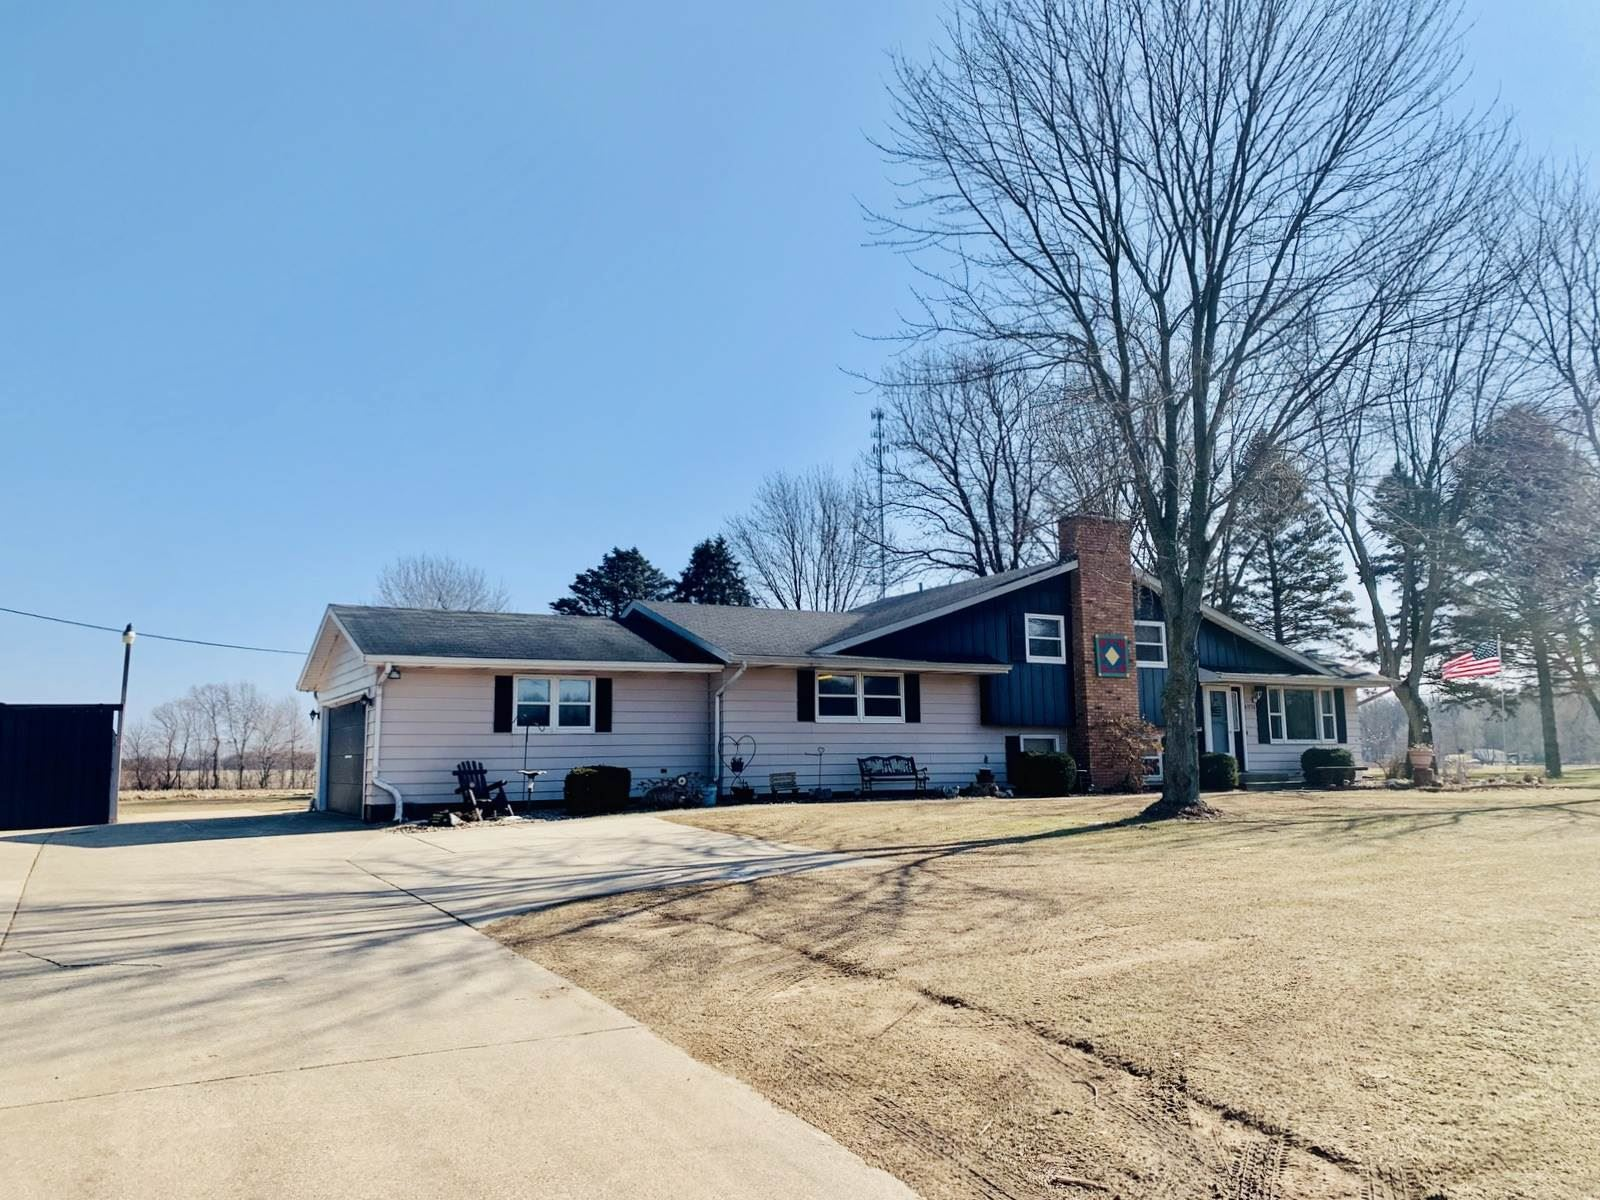 Photo of 63770 SR 23, North Liberty, IN 46554 (MLS # 202006664)